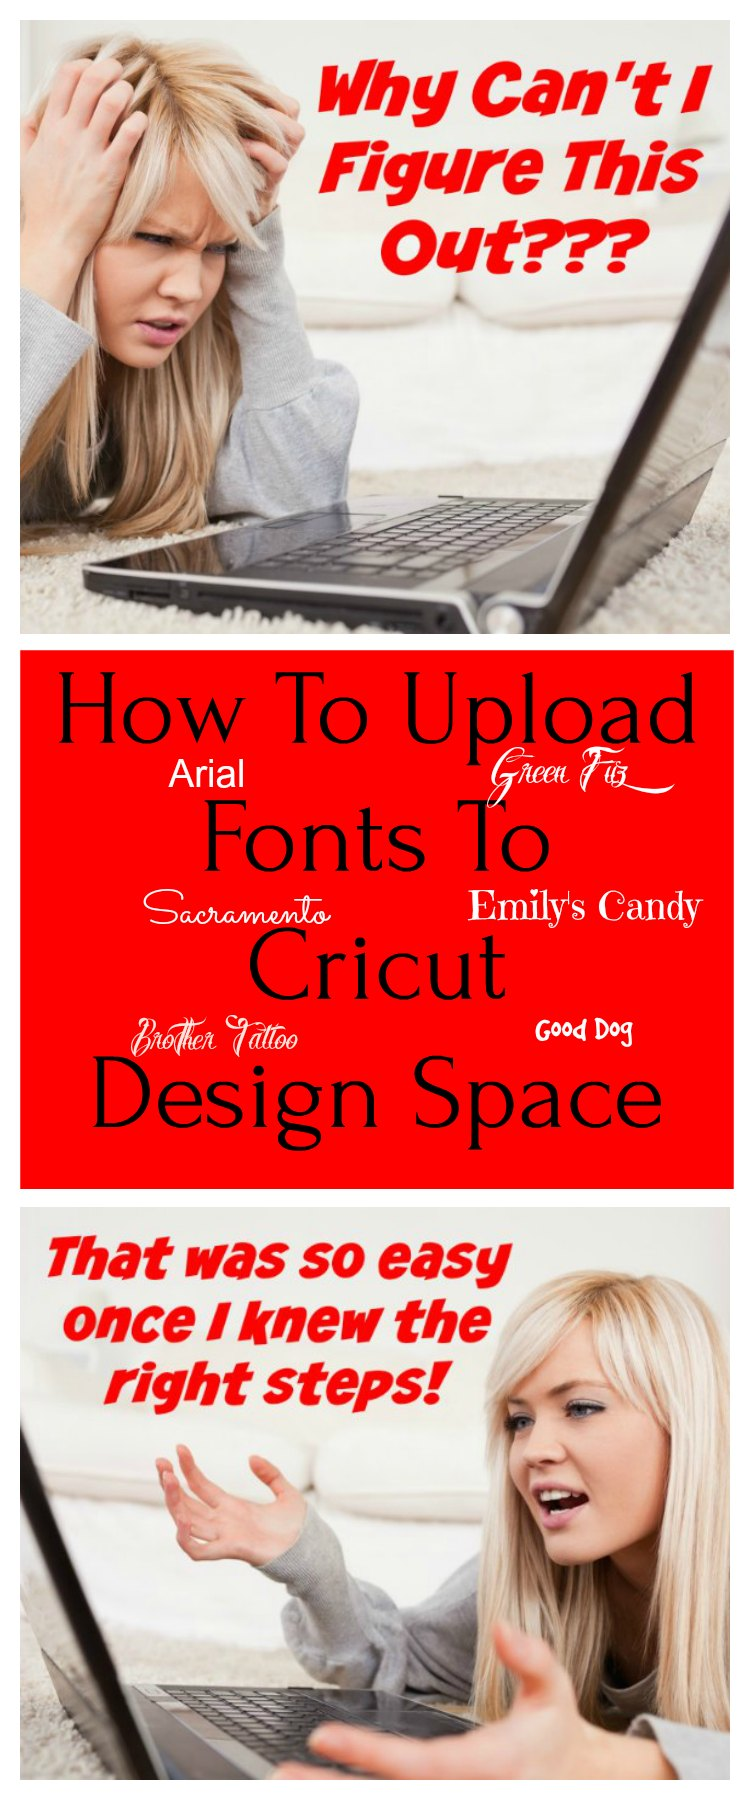 How To Upload Fonts To Cricut Design Space